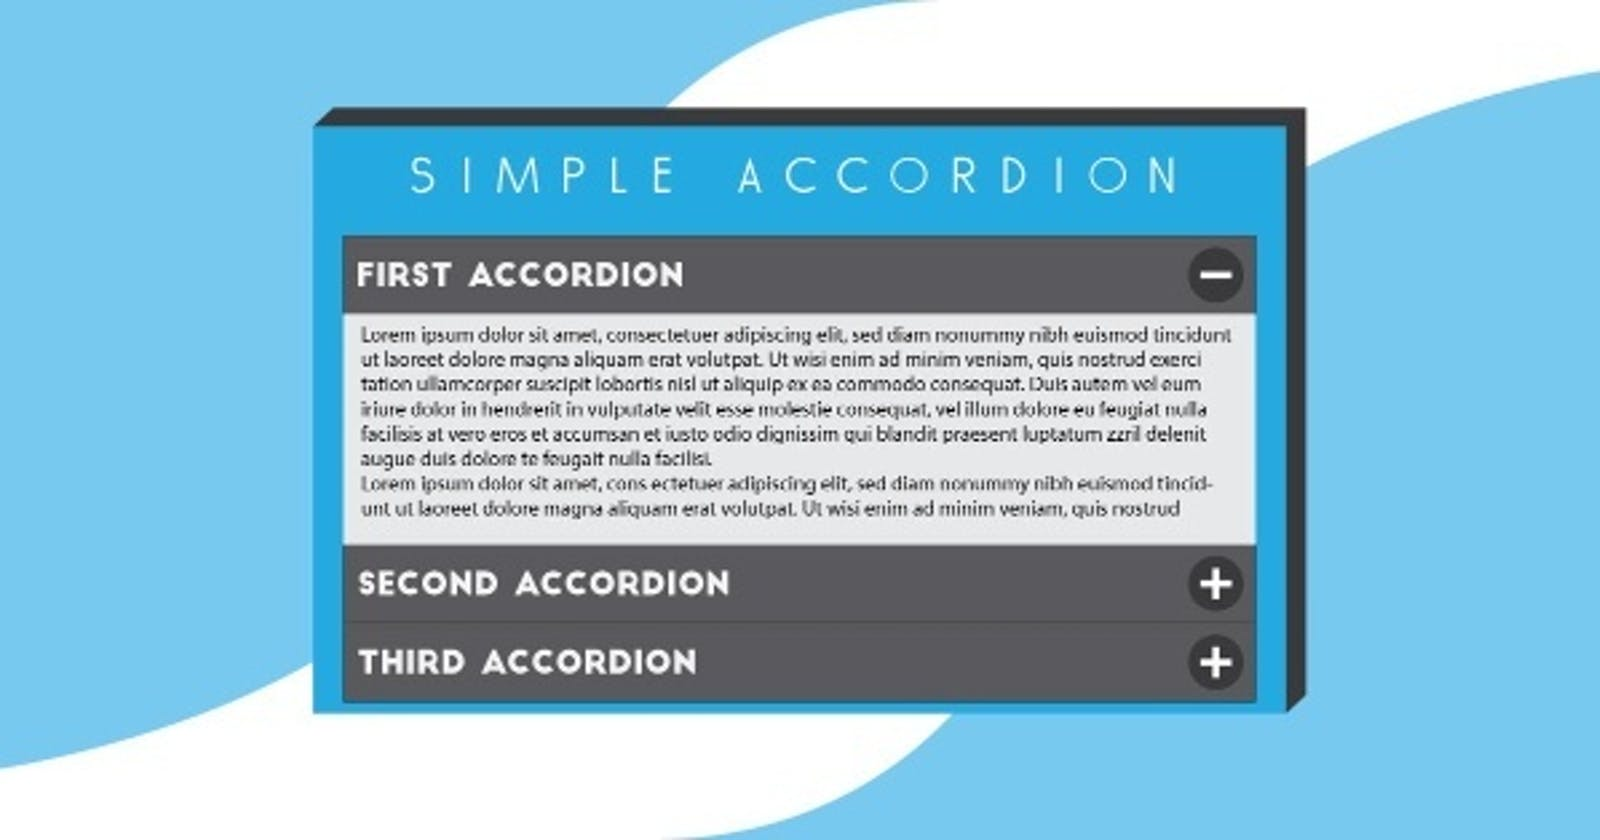 How to Make Accordions in Android?